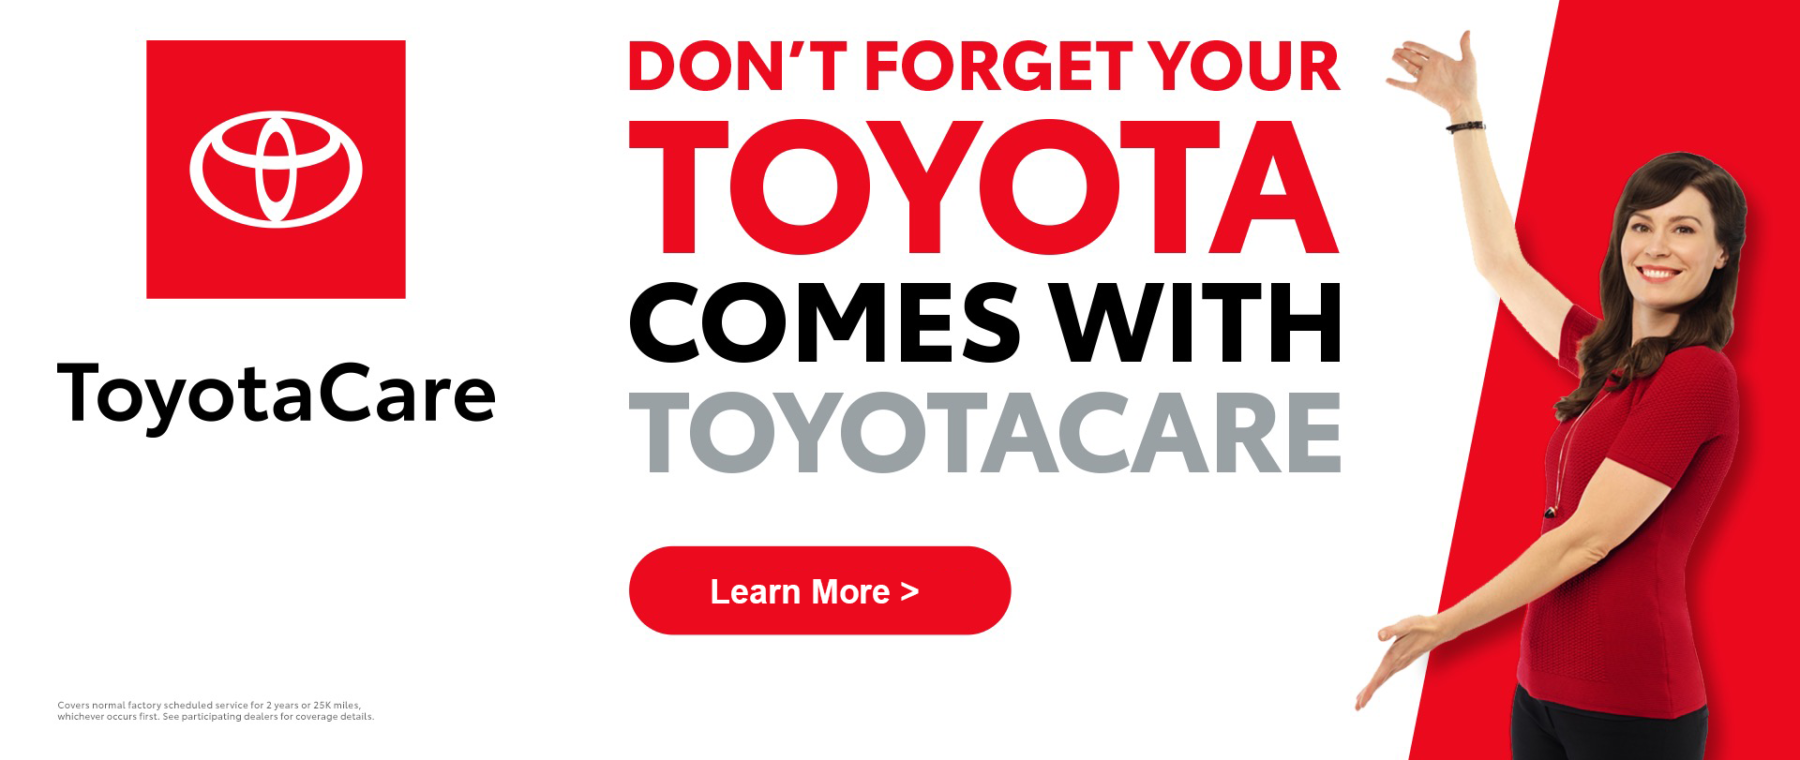 285708_2019_ToyotaCare_Owners_ Digital_Static_Unit_1920x850